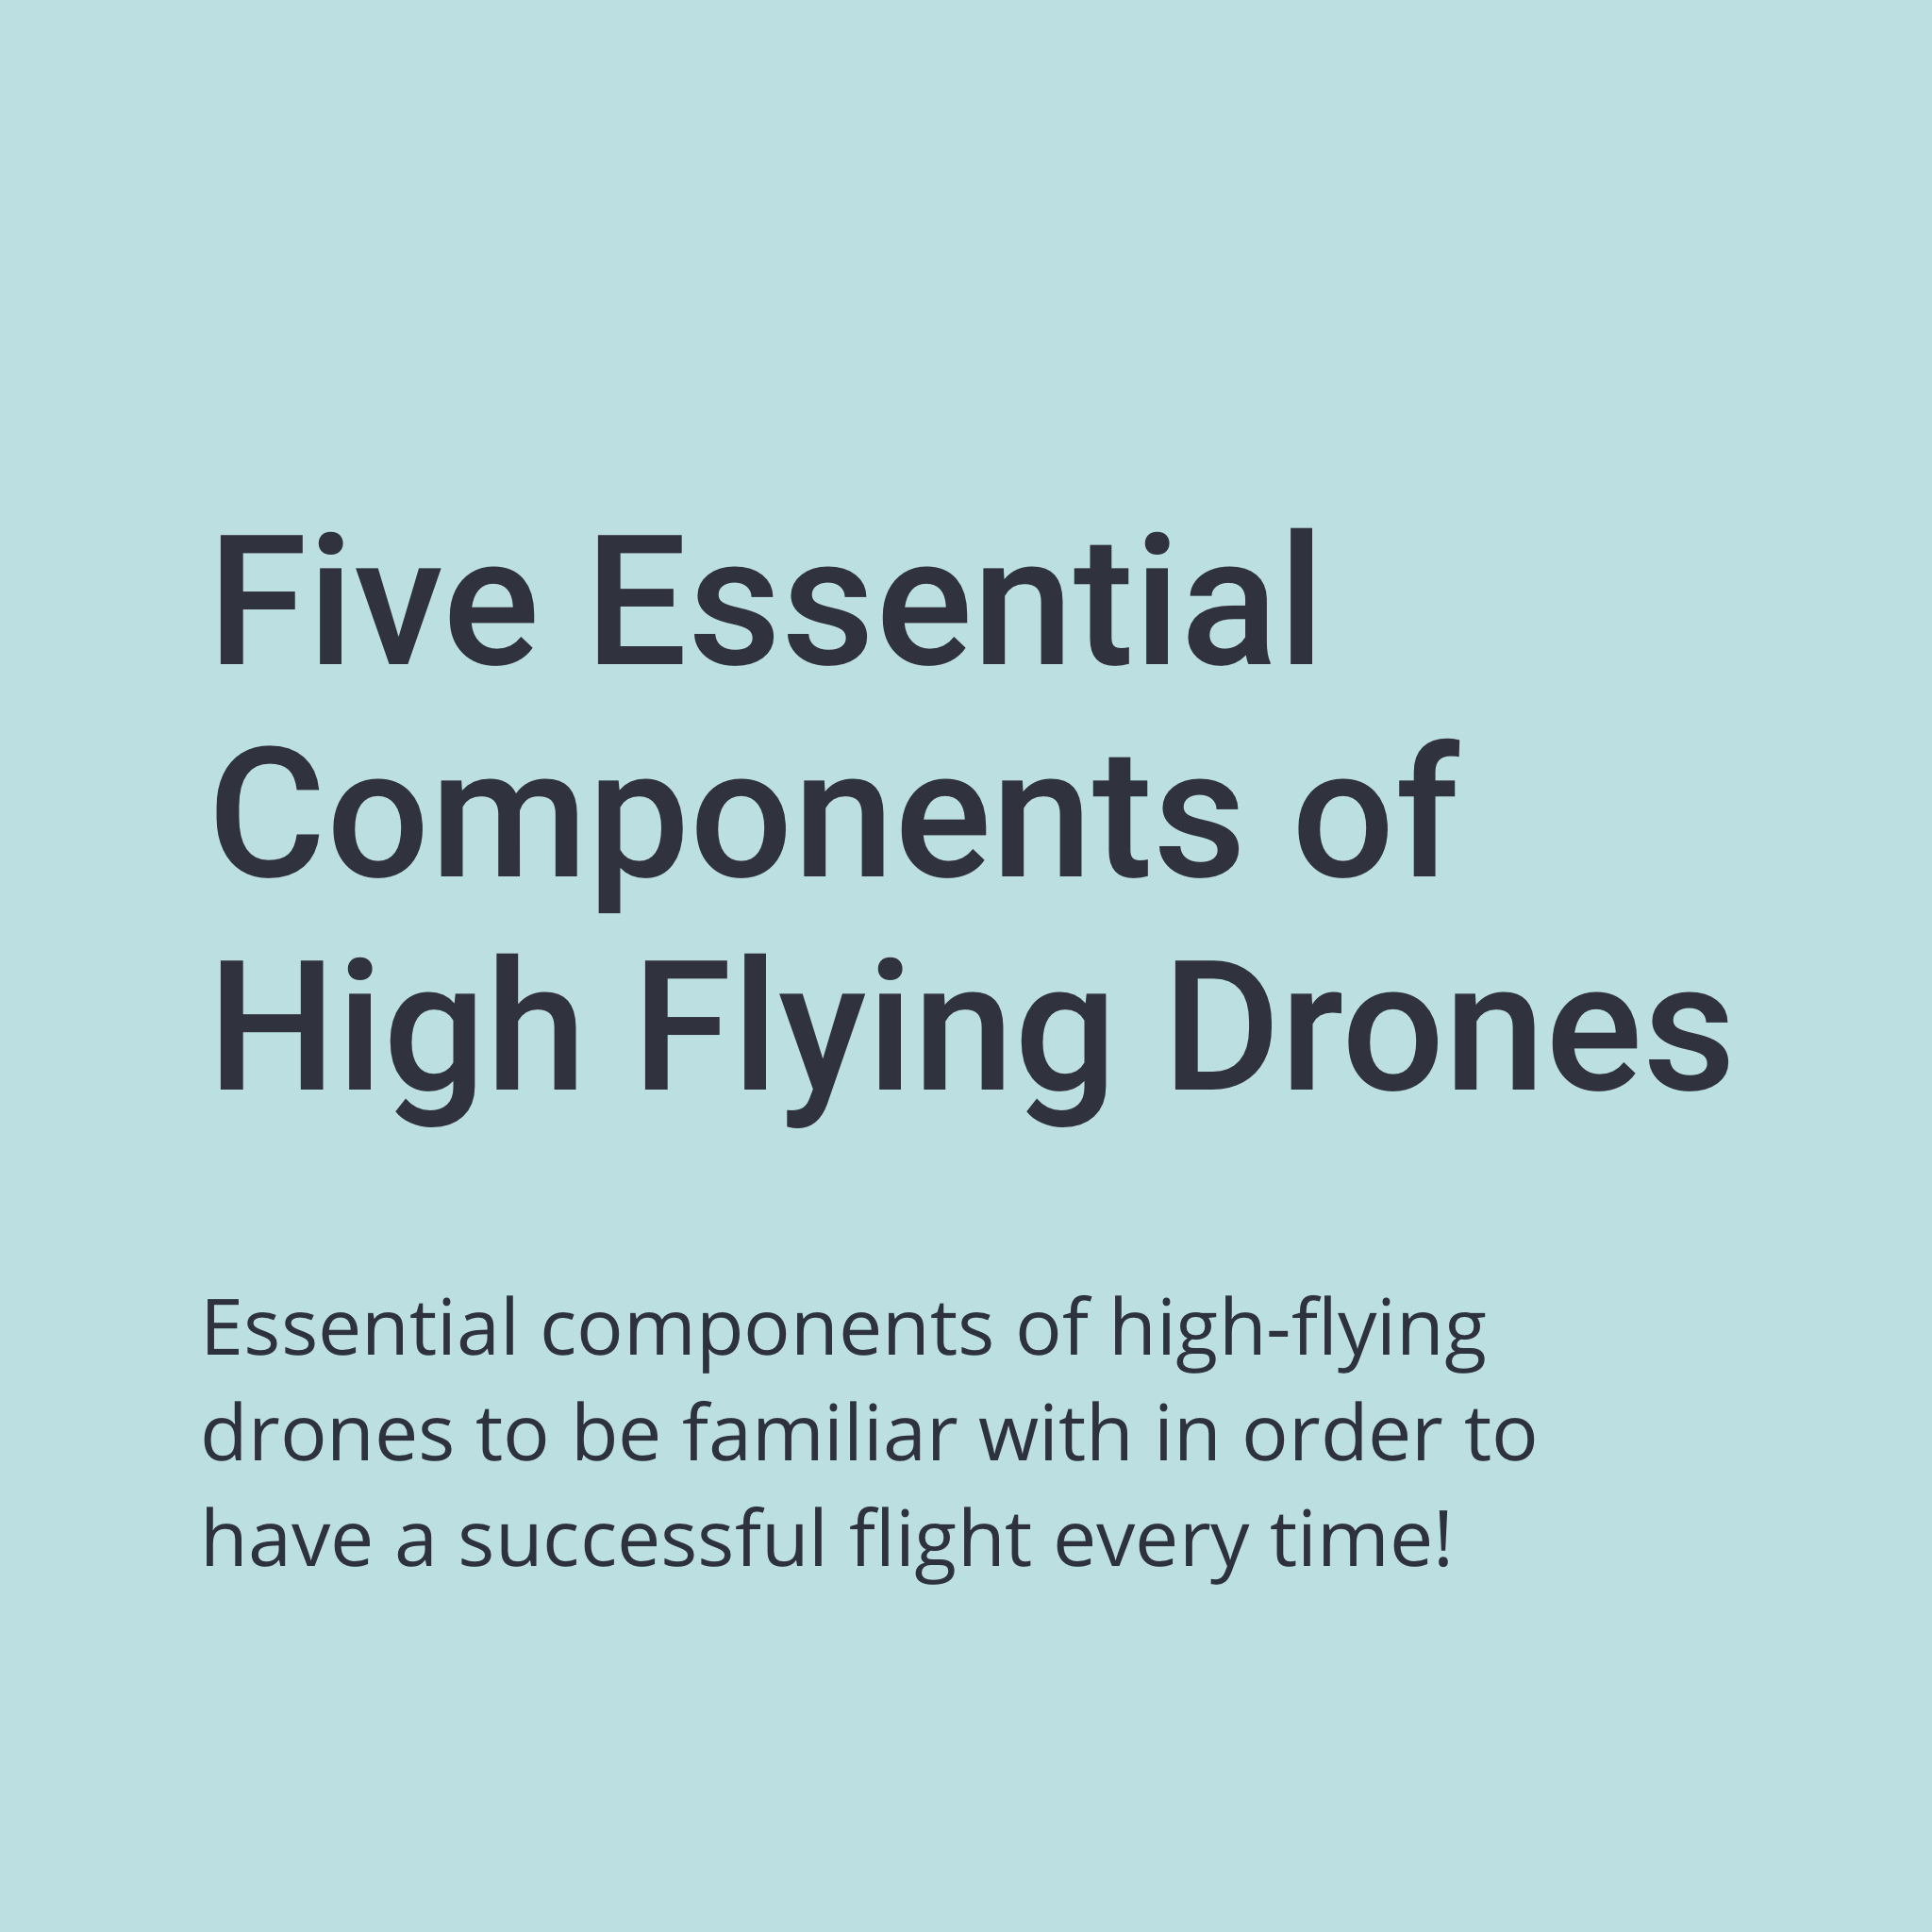 Five Essential Components of High Flying Drones. Essential components of high-flying drones to be familiar with in order to have a successful flight every time.